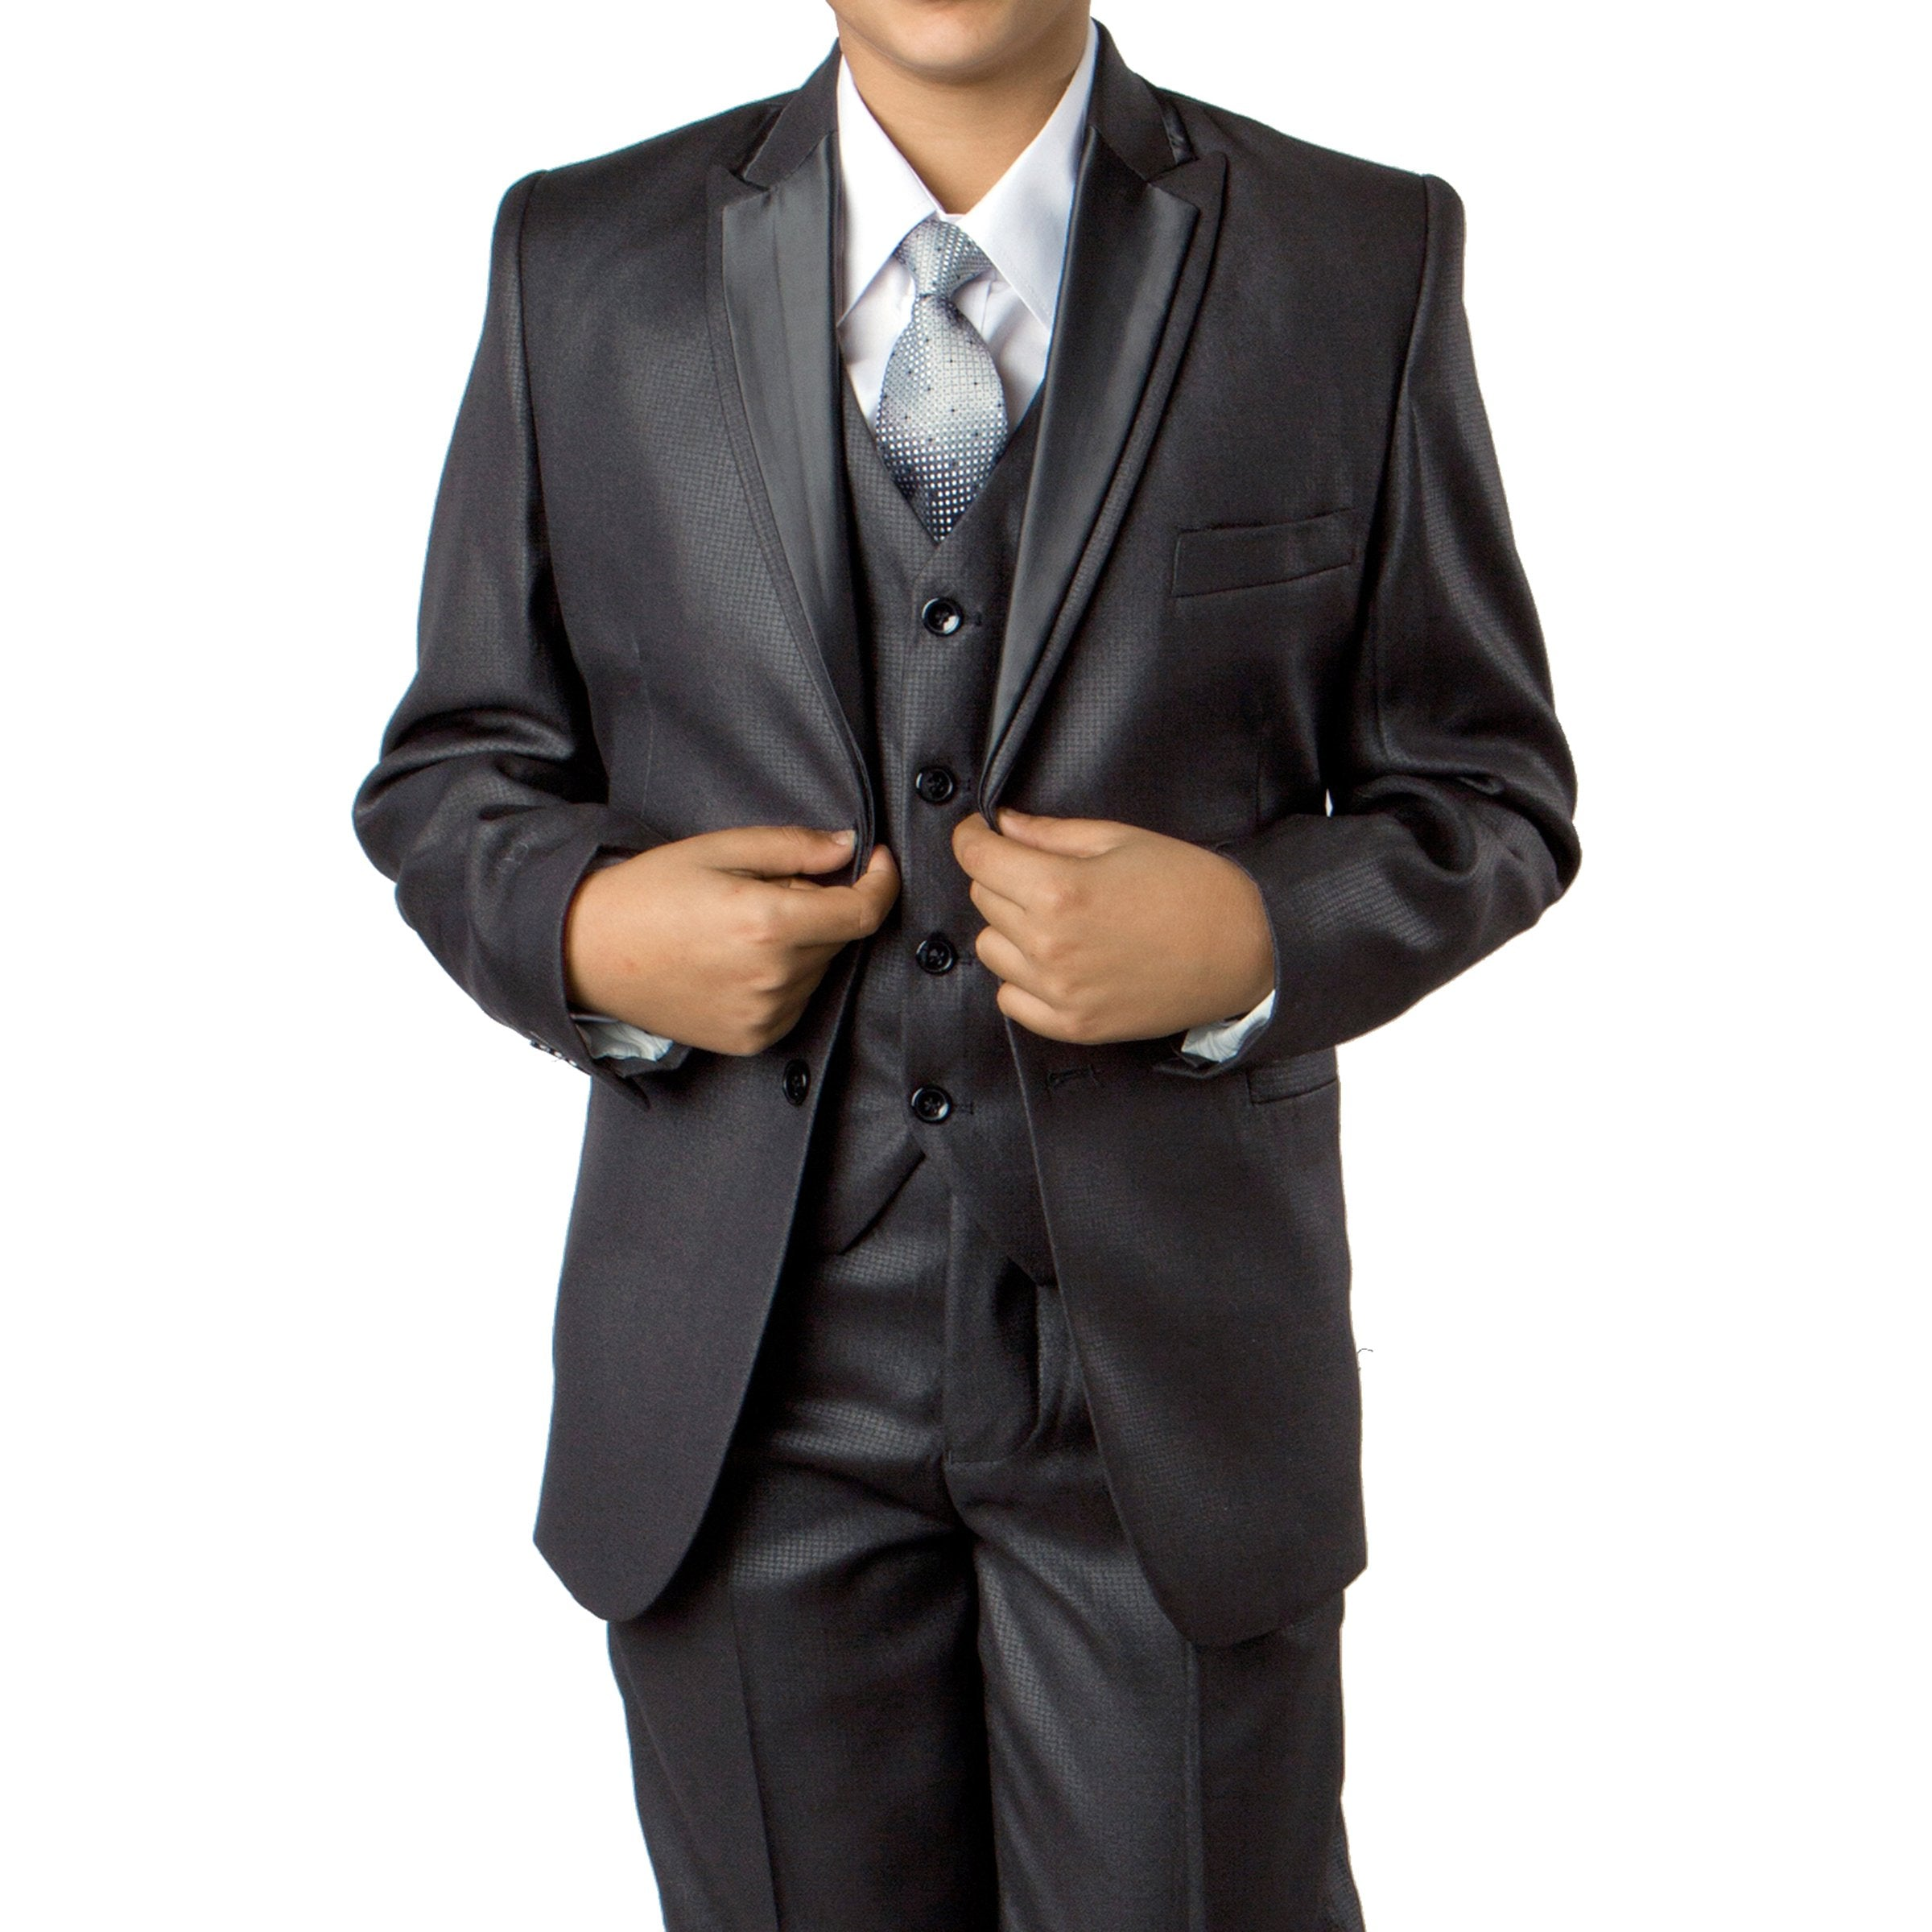 Solid Suit W Satin Trim Jacket Suits For Boy's